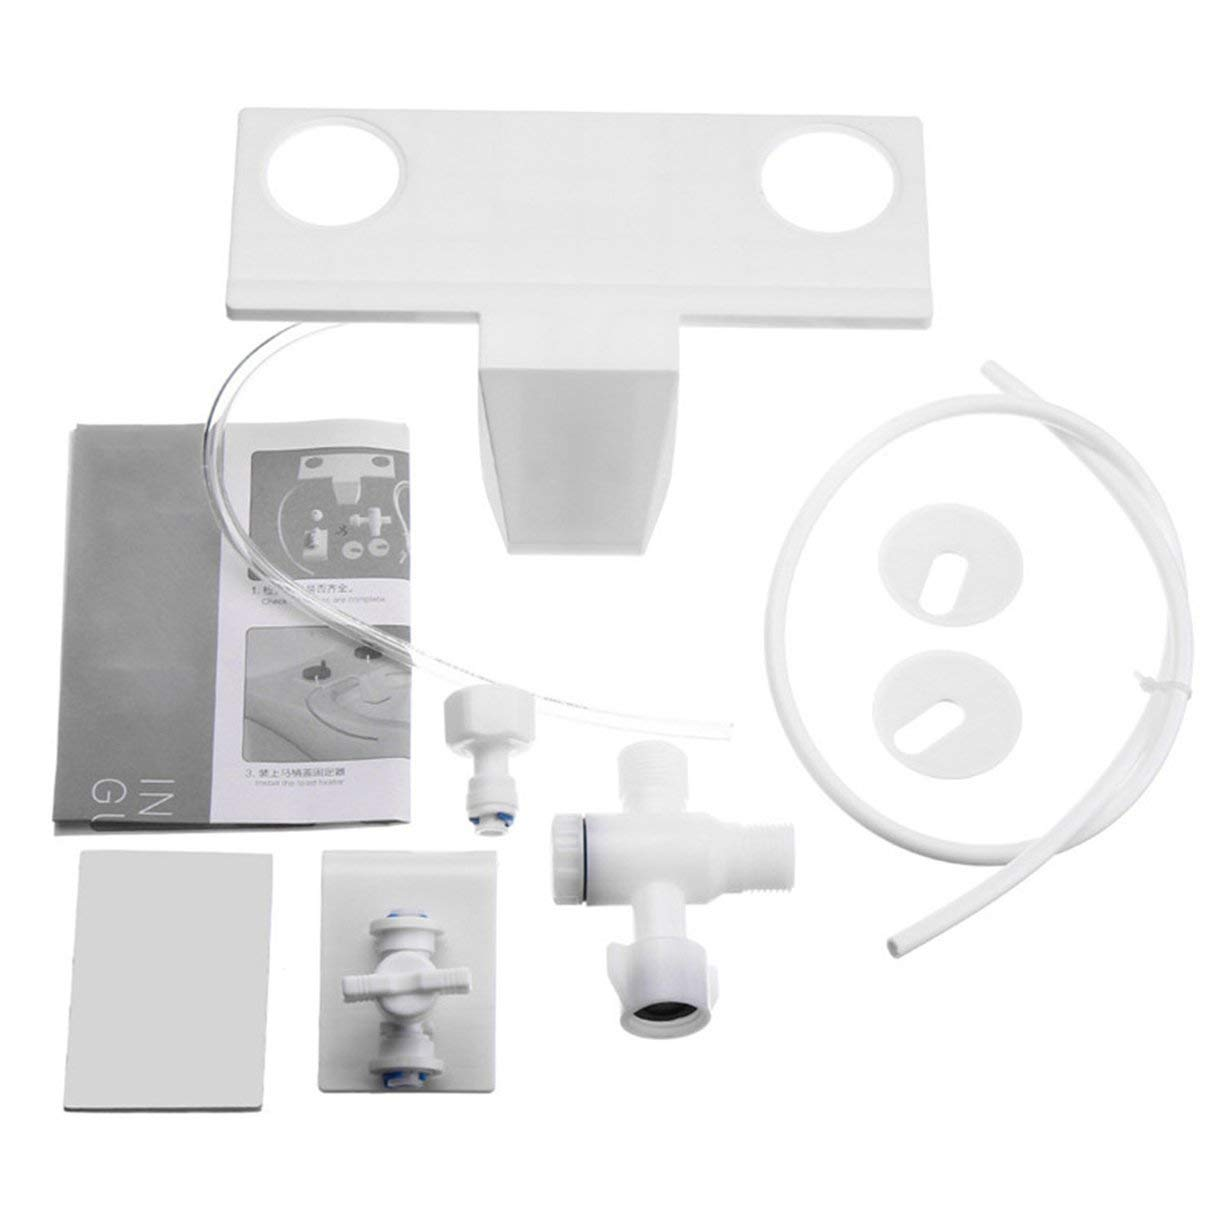 Toilet Bidet Fresh Water Spray Nozzle Toilet Seat Attachment Hand Operation Non-Electric Bathroom Shattaf Kit